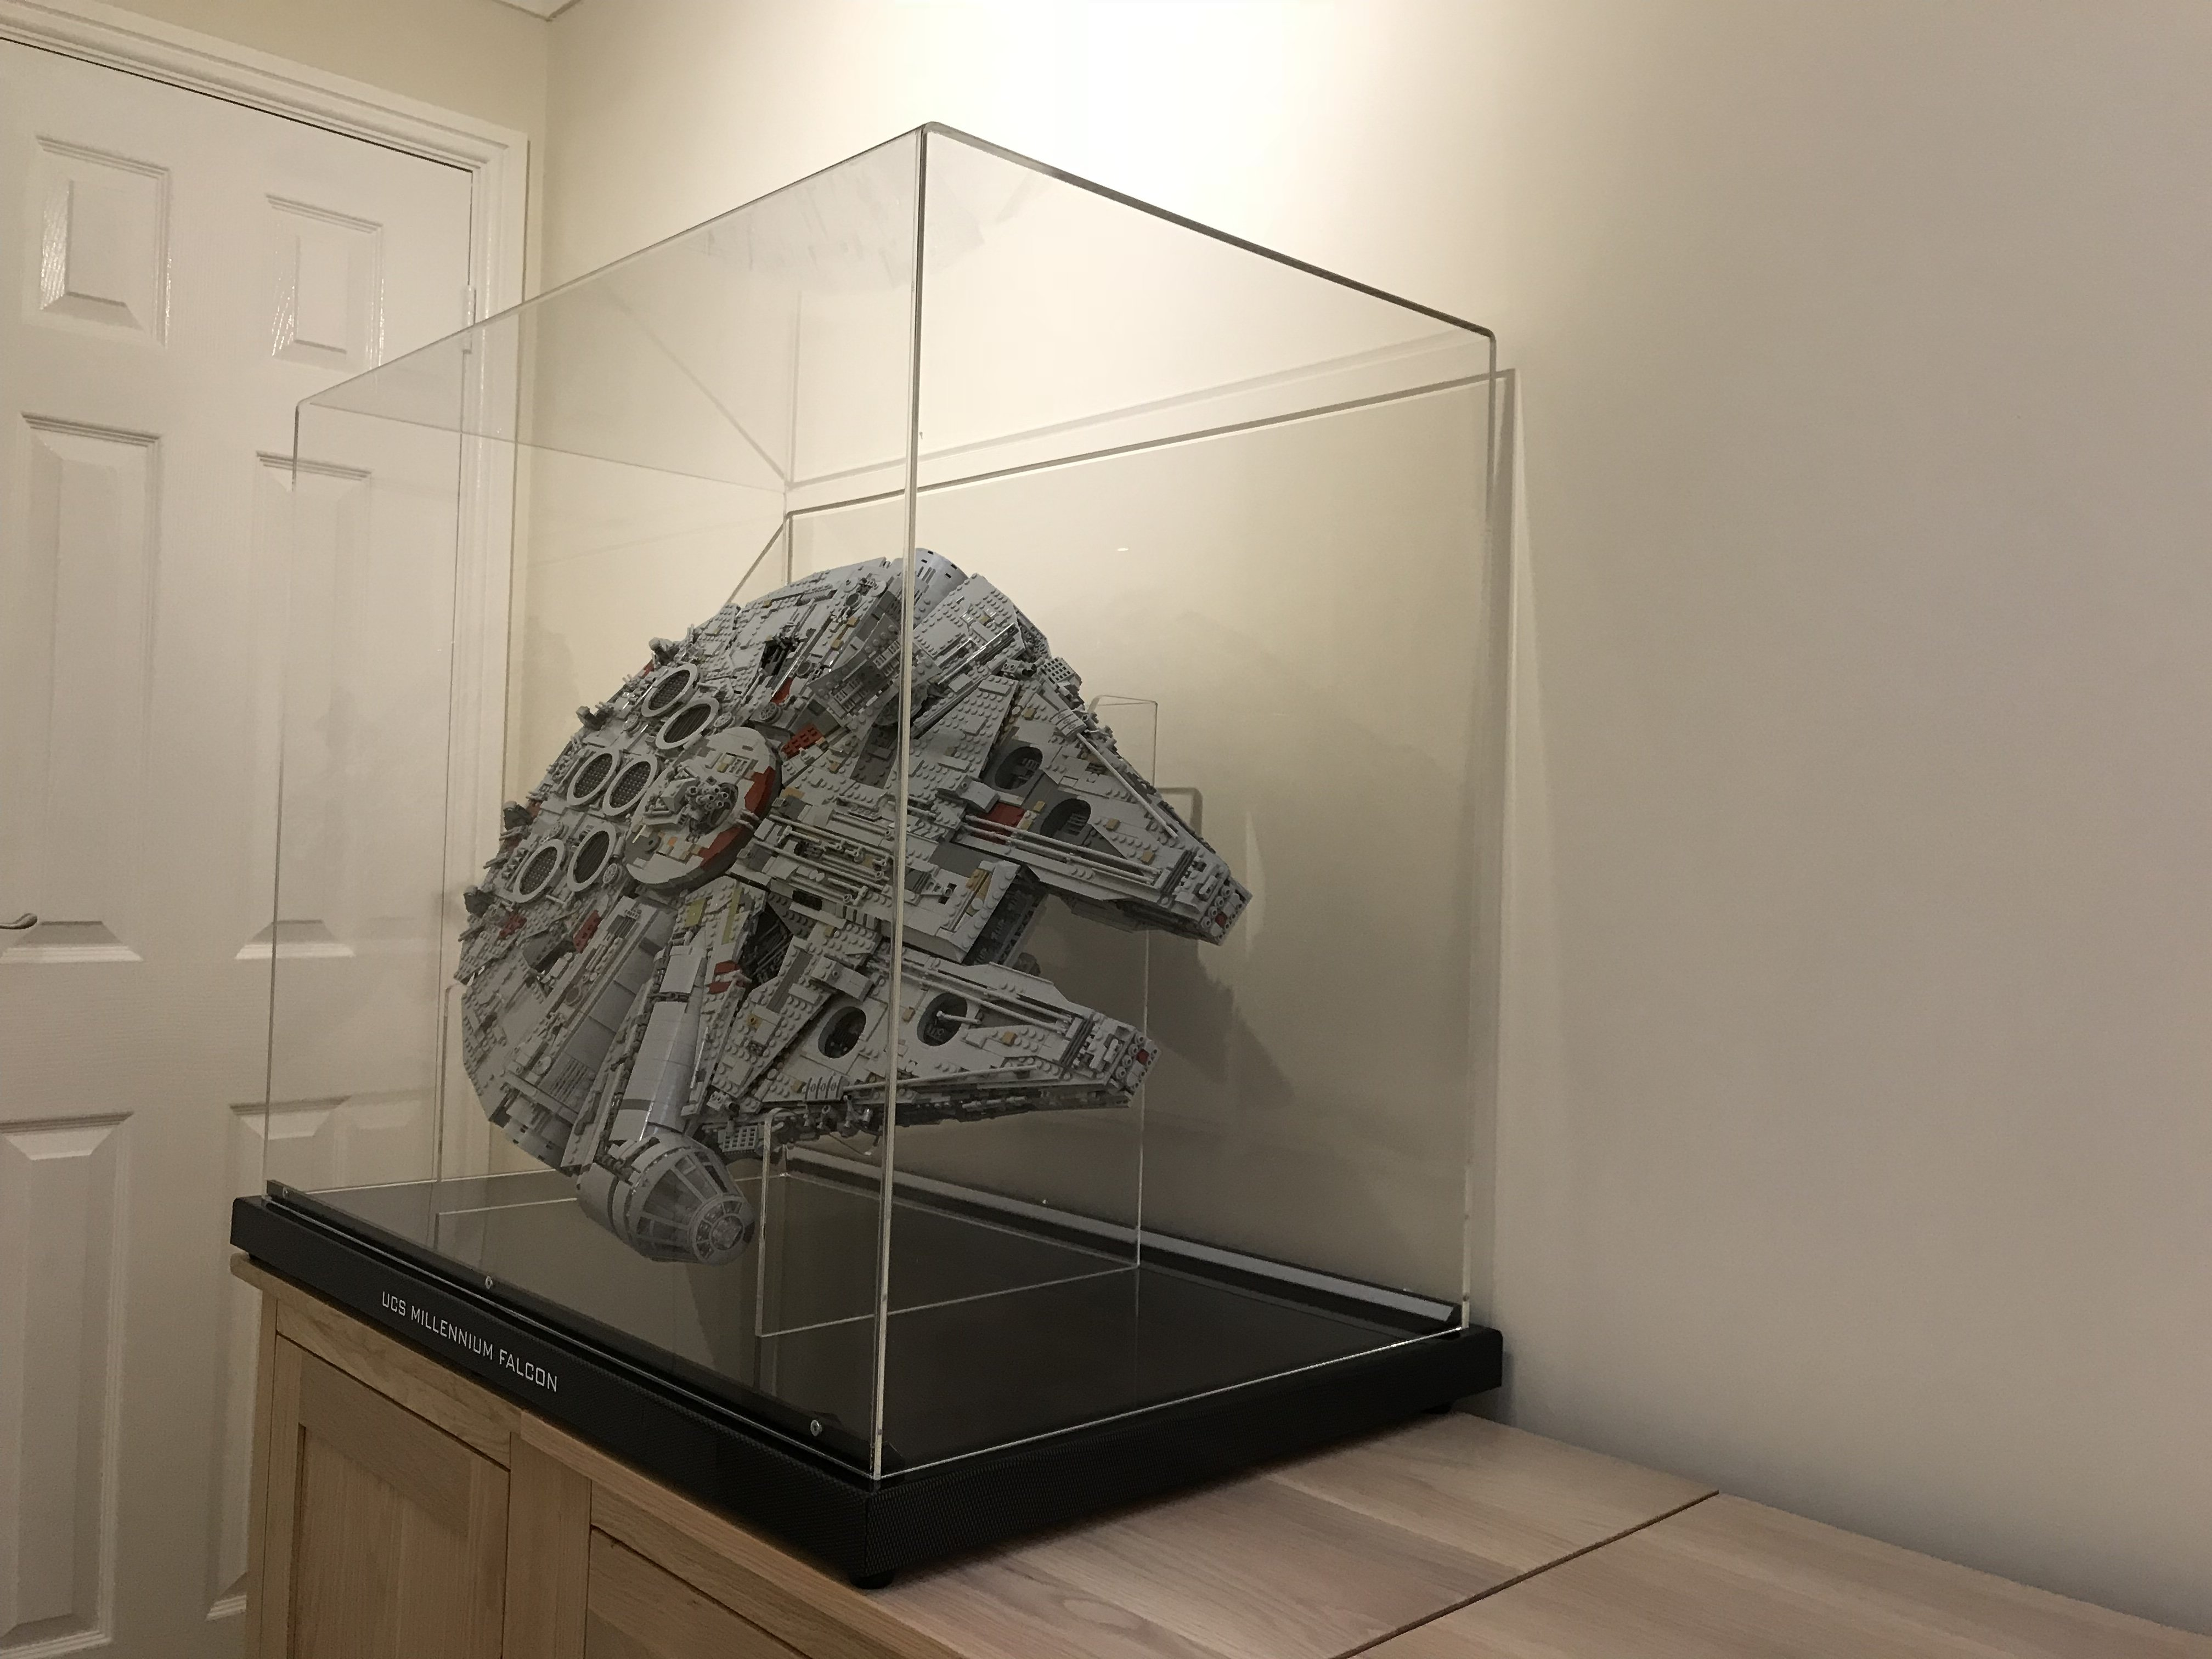 75192 ucs millennium falcon display ideas stands for Table basse vitrine